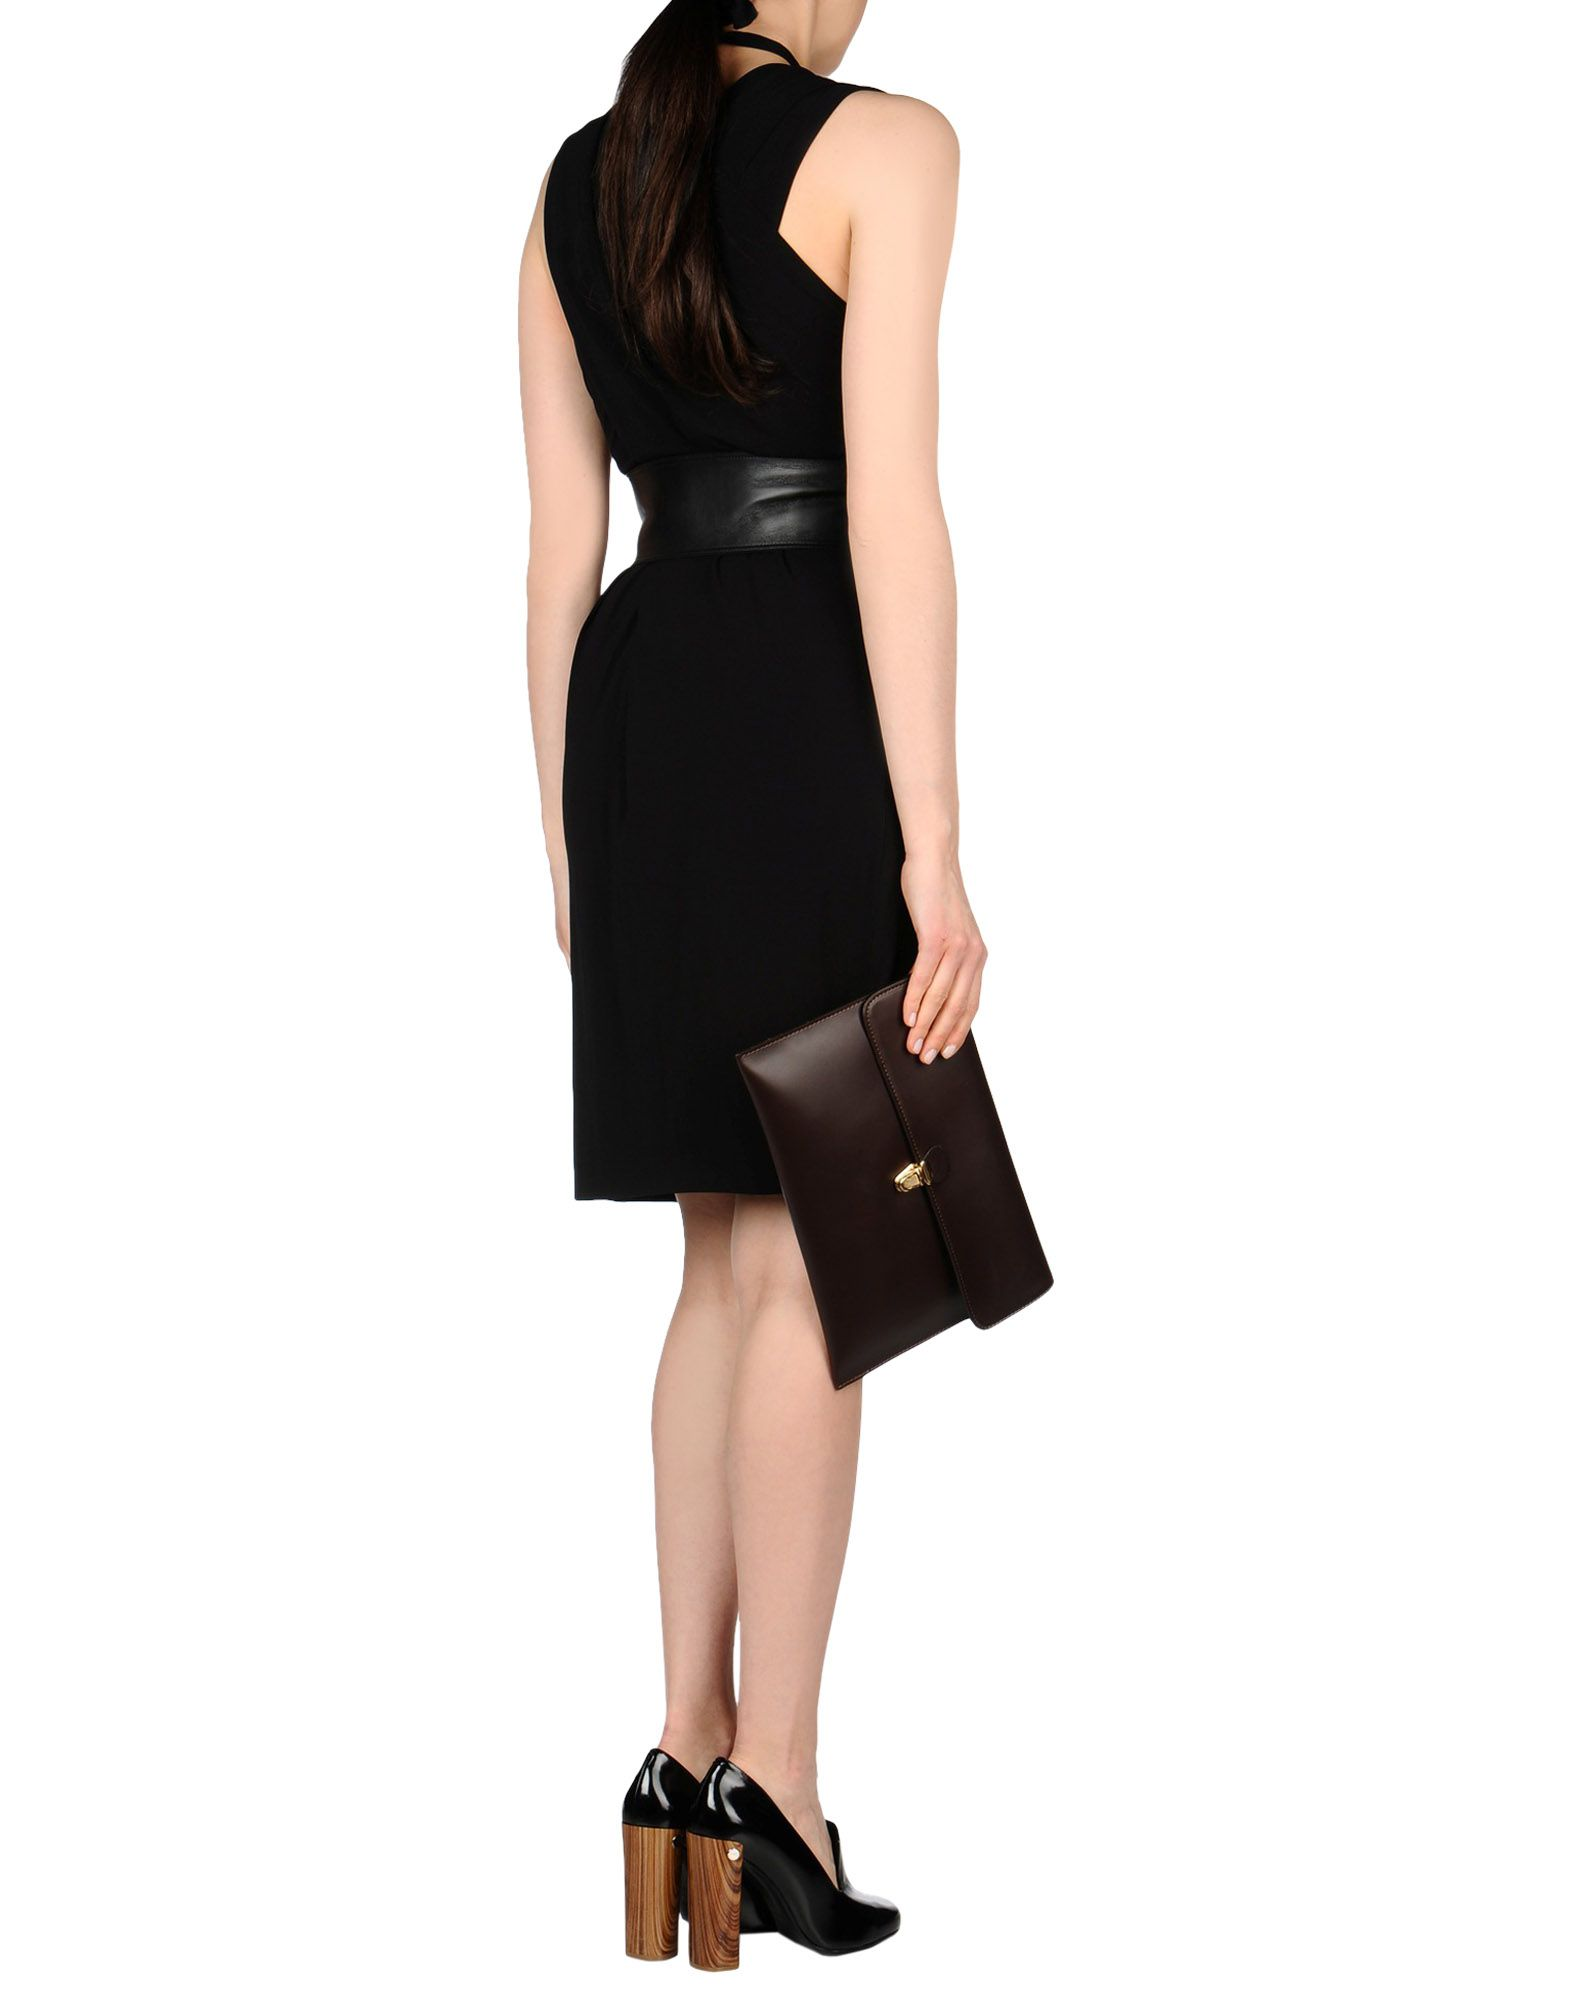 Alexander wang black dress 4